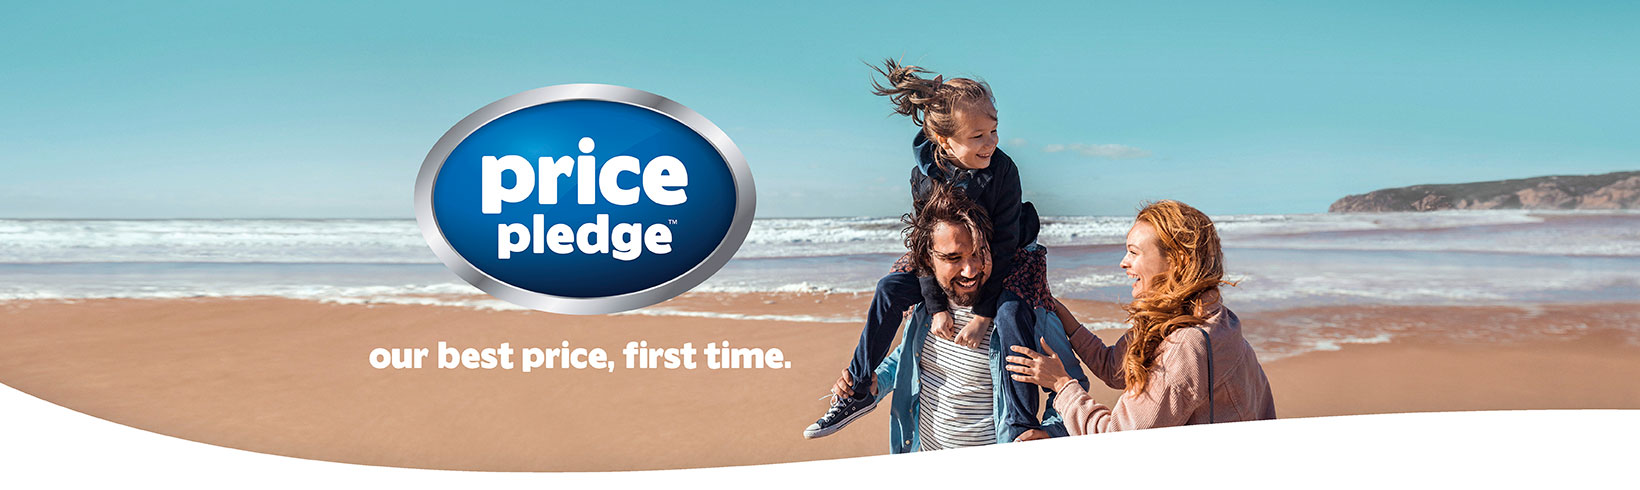 Trivett Subaru Melbourne Price Pledge